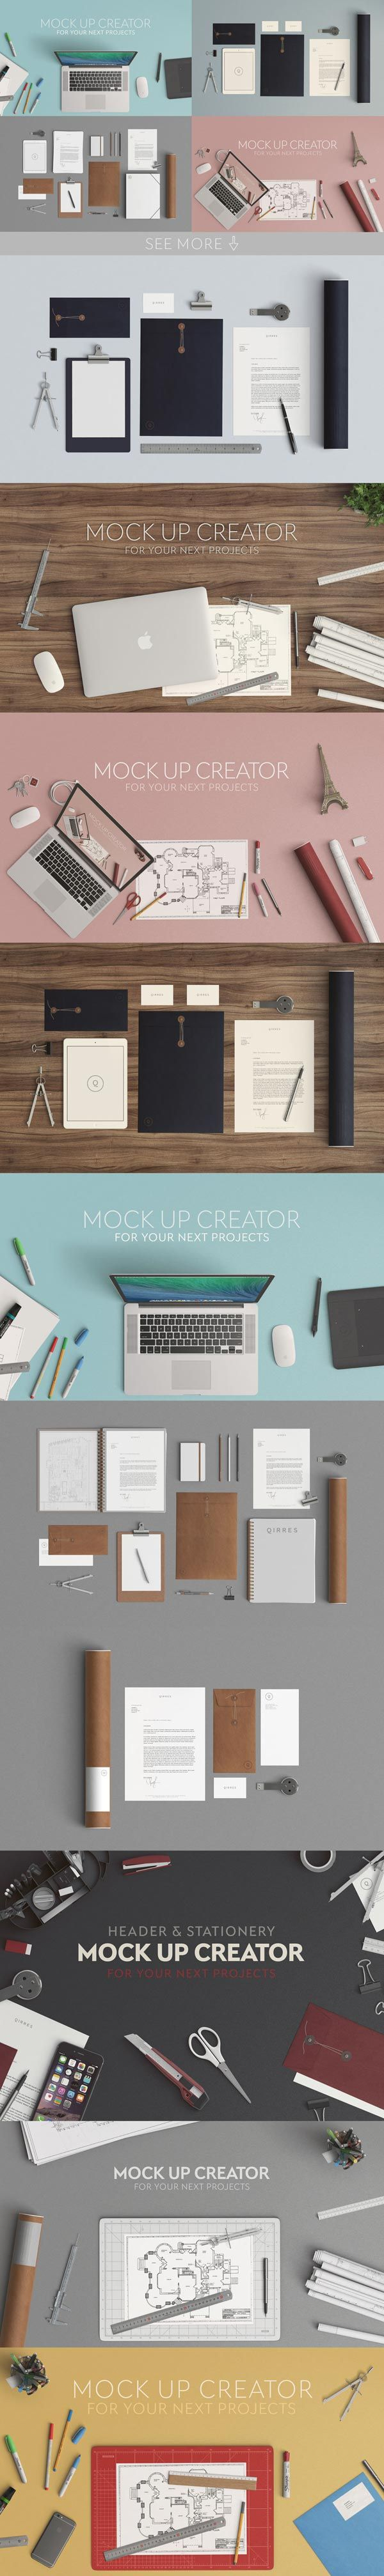 Header Stationery Mock Up Creator